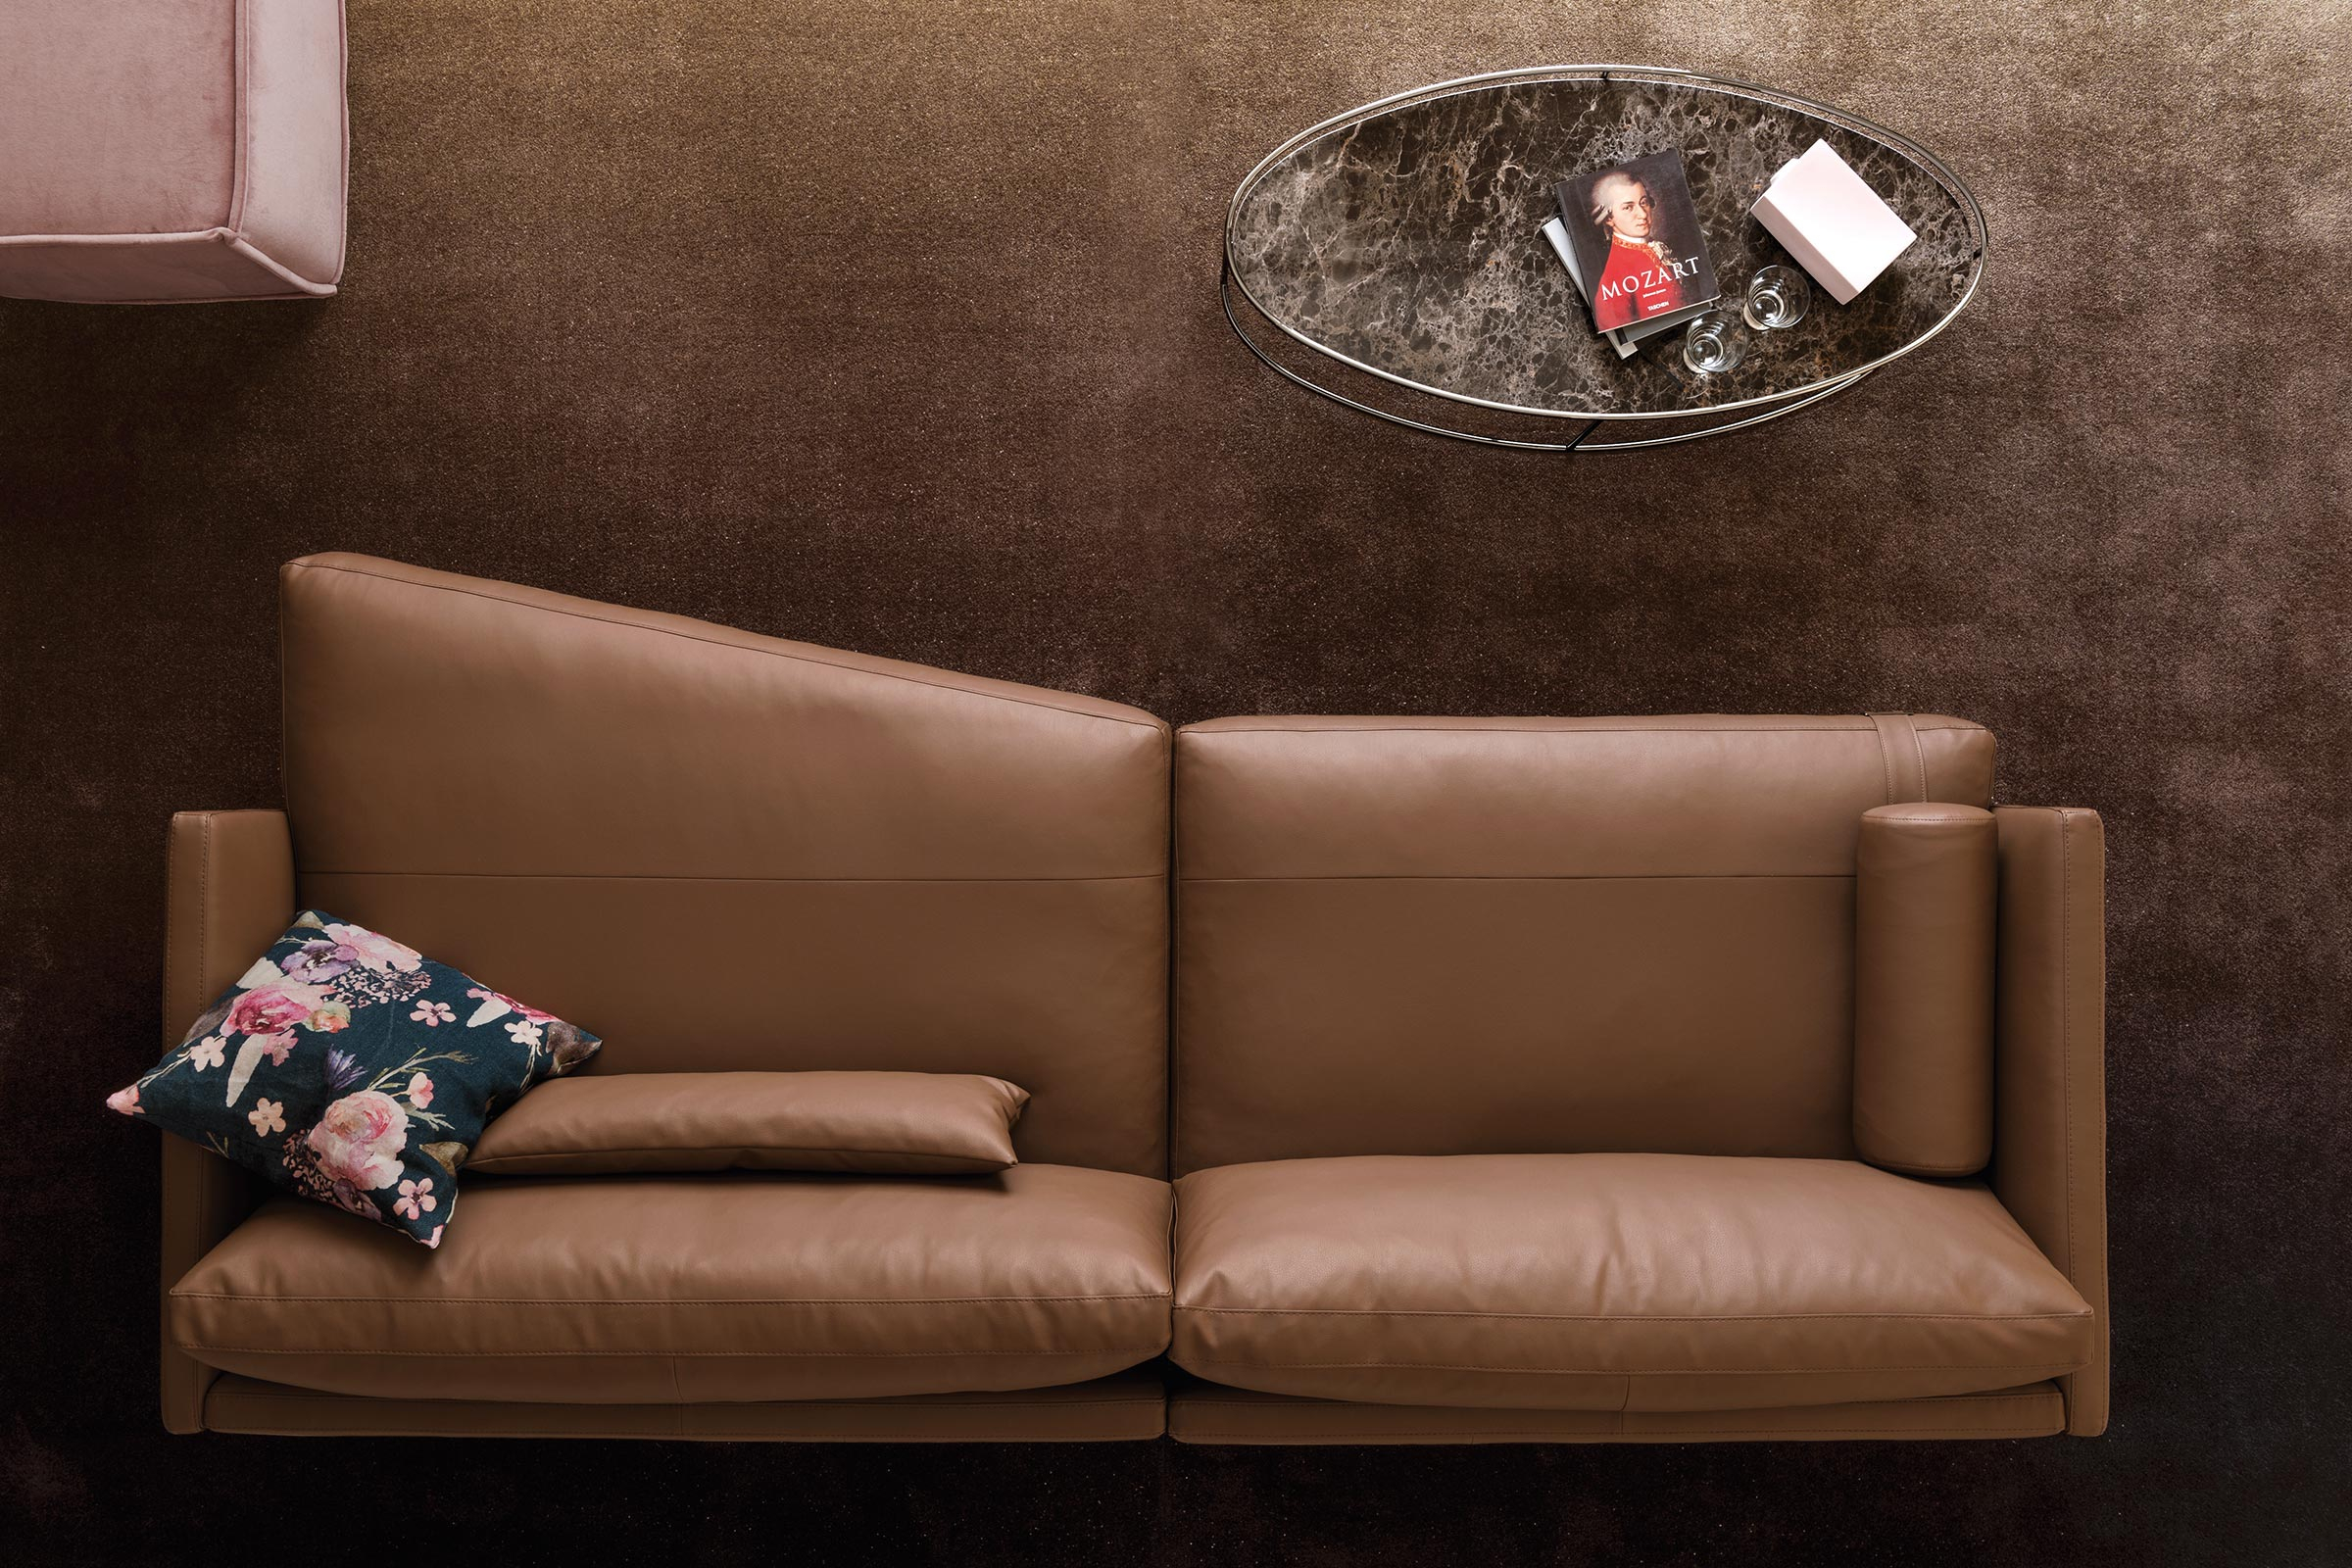 Mies Contemporary Modular Sofa   Calligaris Boca Raton In Lounge Sofas And Chairs (View 11 of 15)